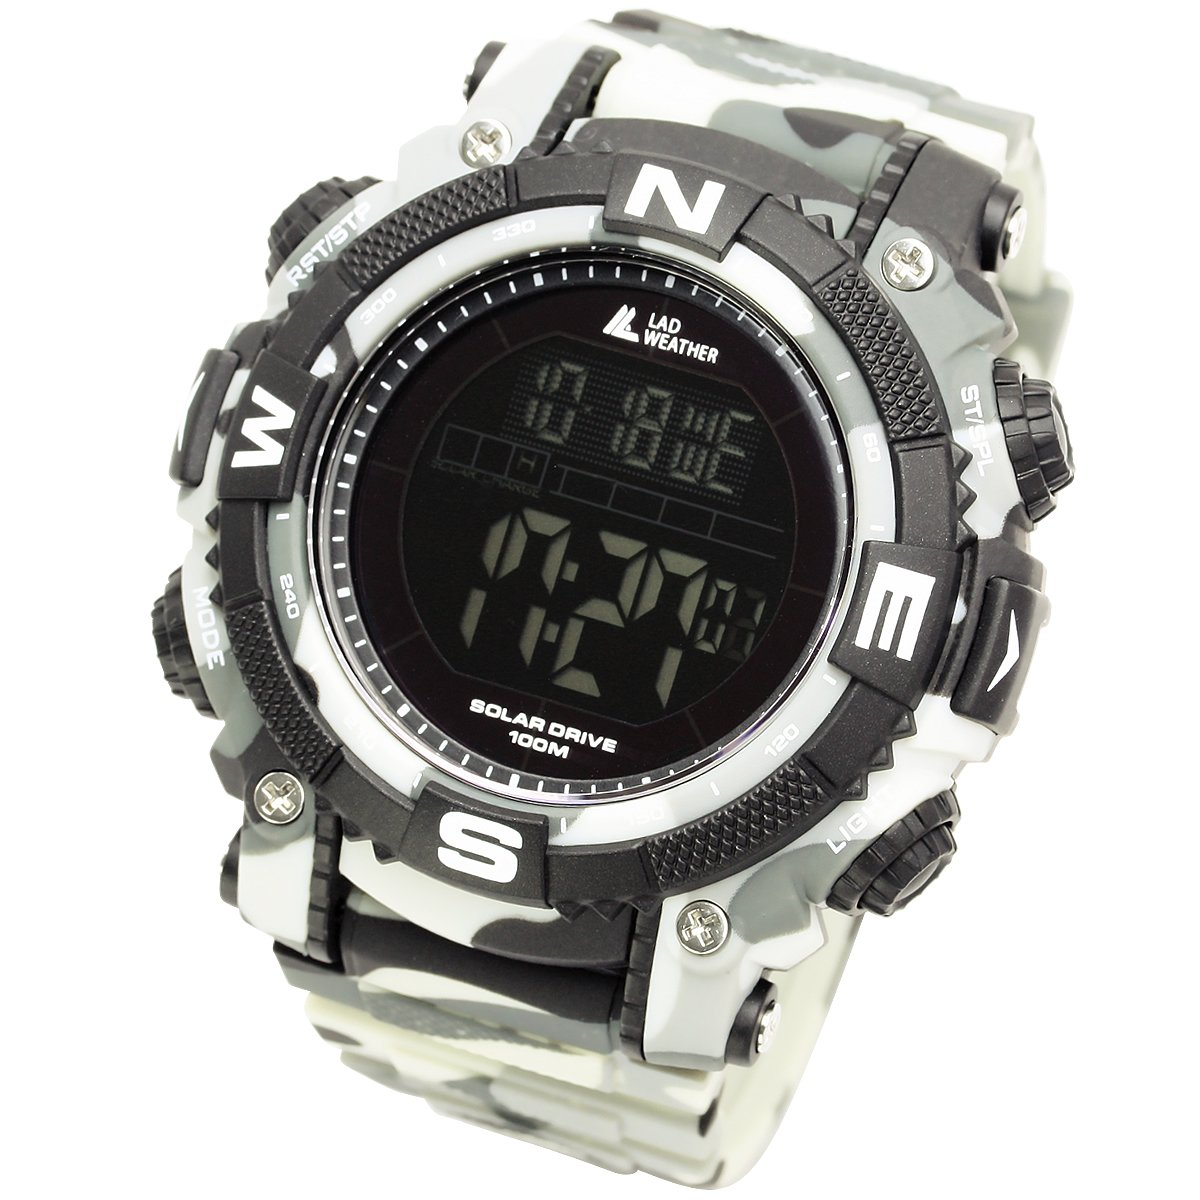 [LAD WEATHER] Digital watch Powerful solar battery 100 meters water resistant Military Outdoor Smartwatch by LAD WEATHER